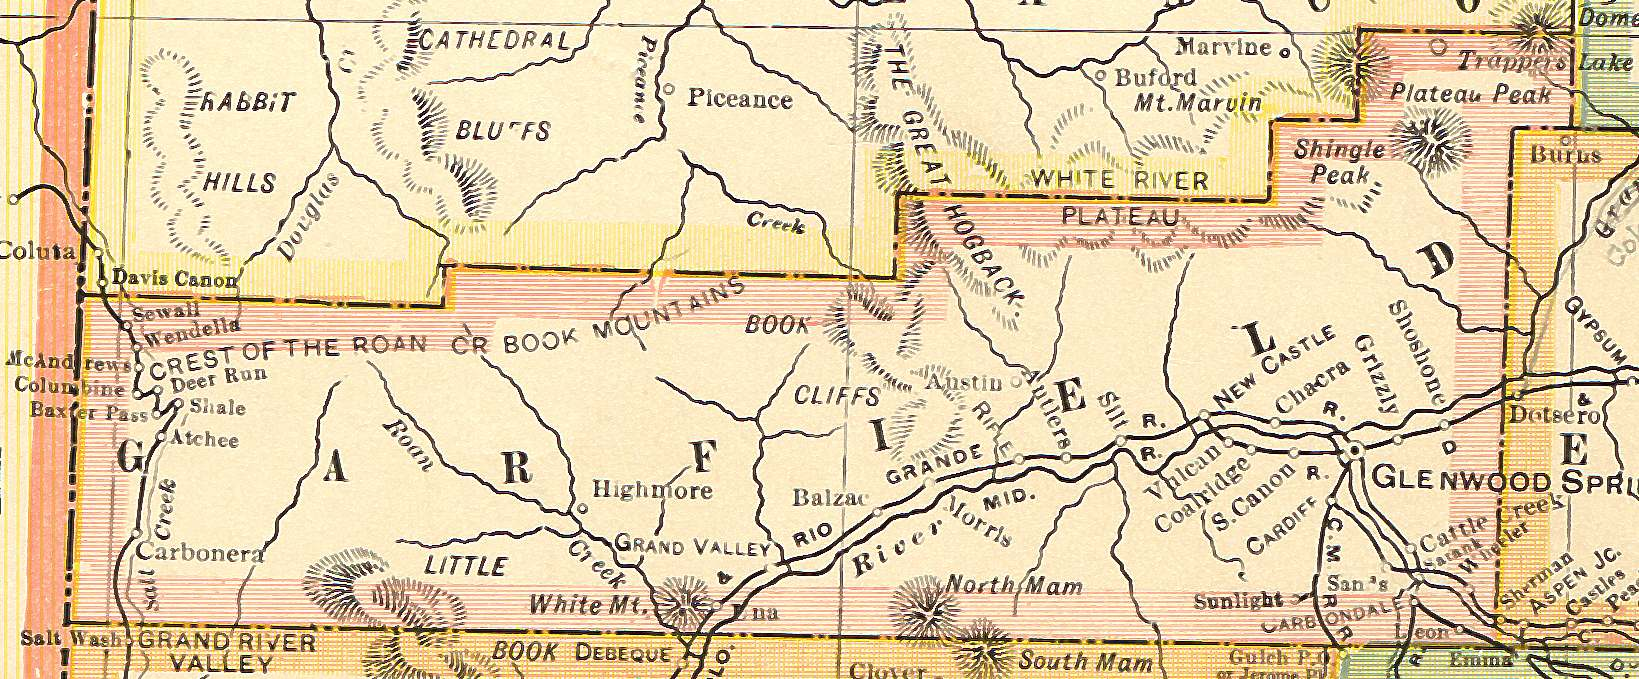 Garfield County map from the 1922 Standard Atlas of Yuma County